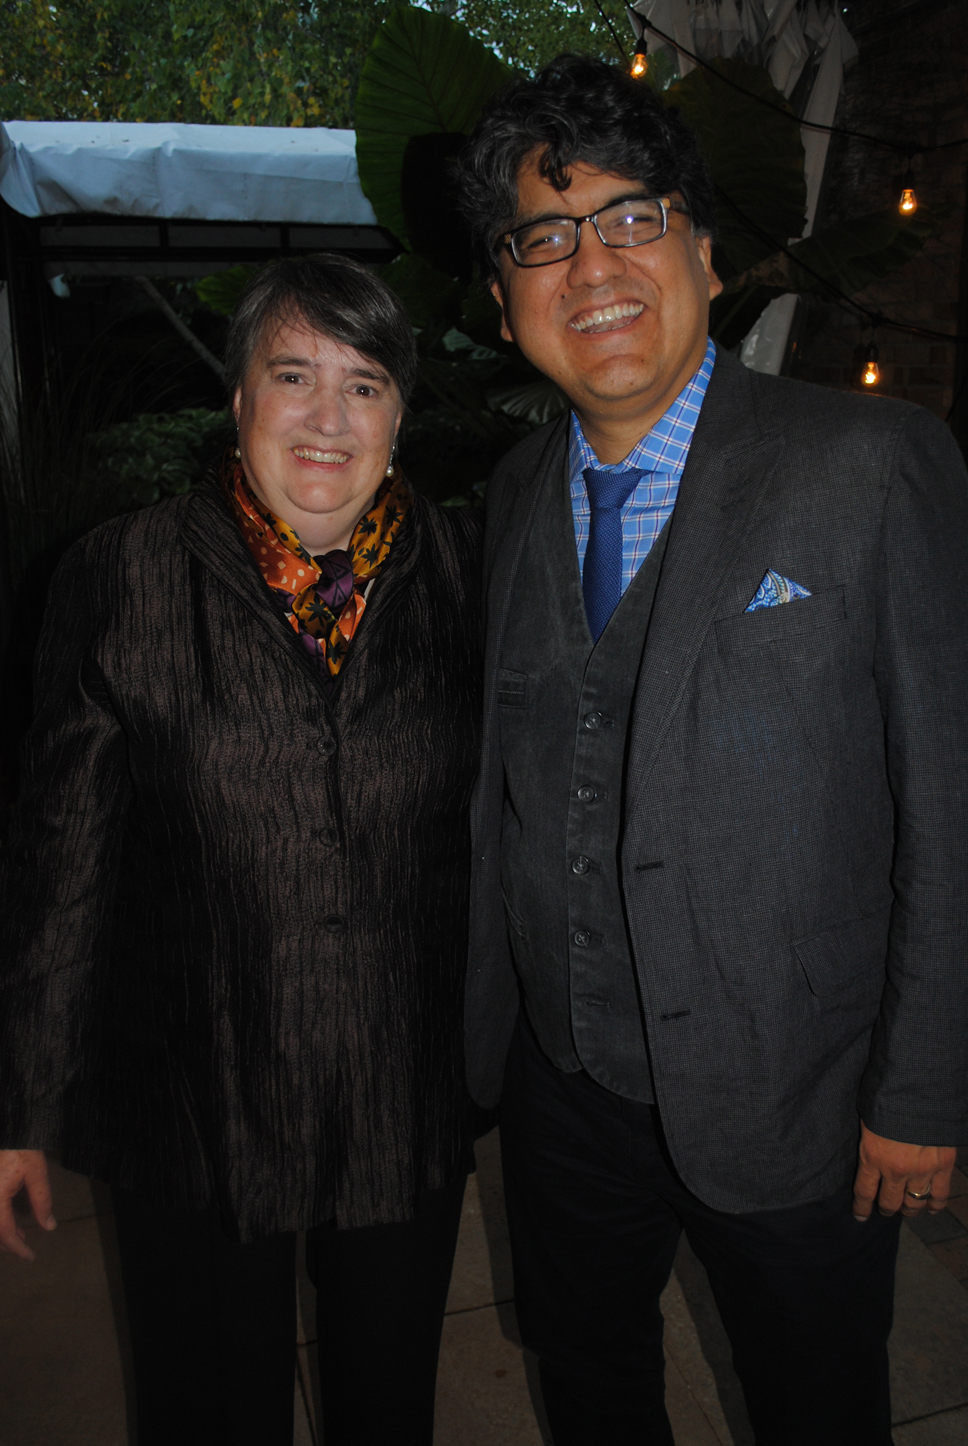 From left: Ann Merritt (Glenview) and author Sherman Alexie. Photo by ...